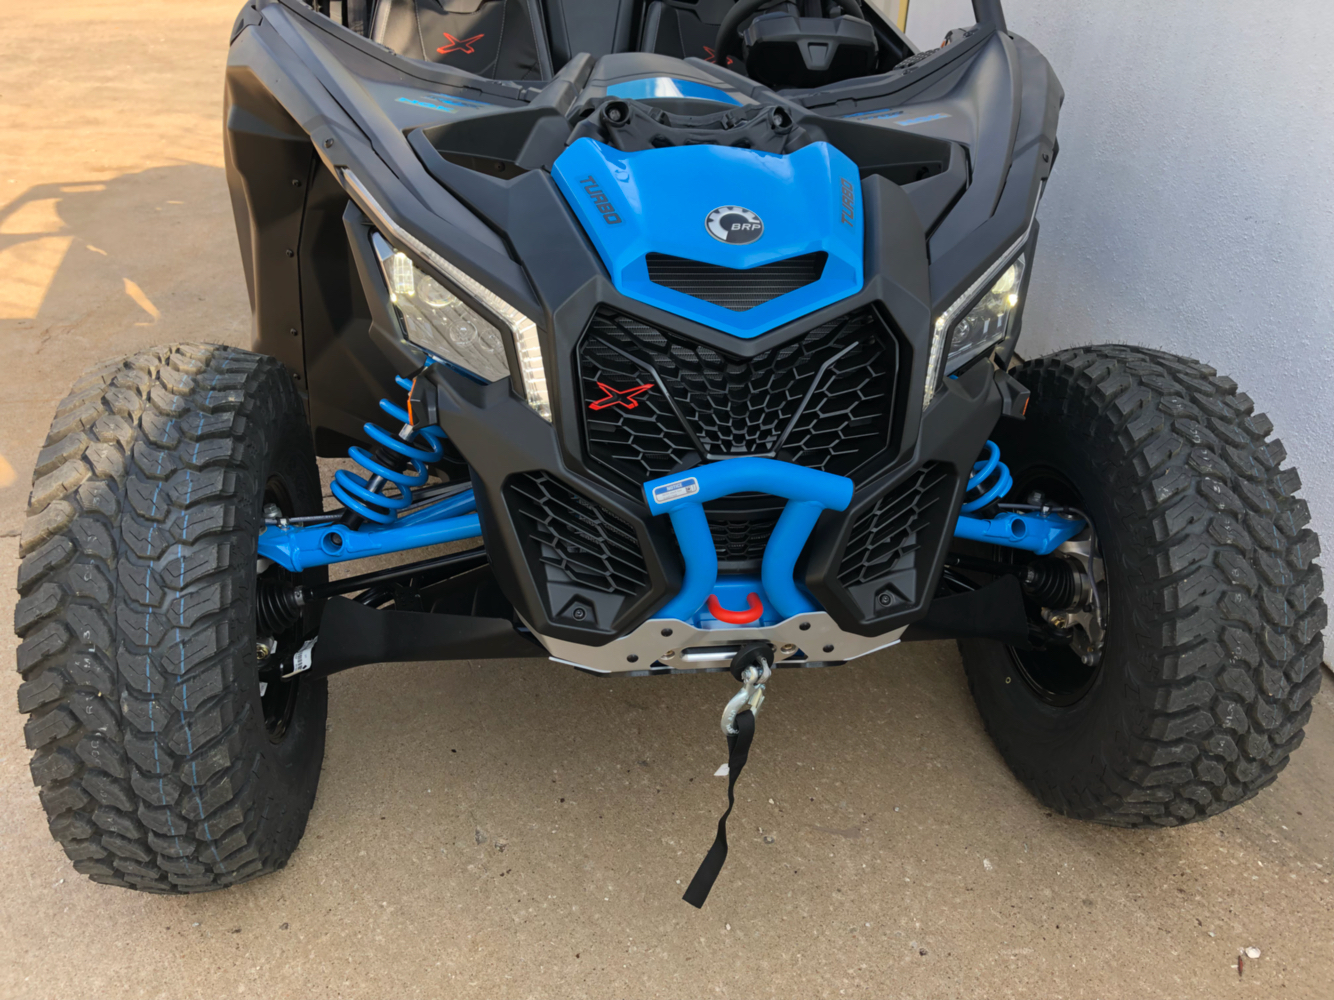 2019 Can-Am Maverick X3 X rc Turbo in Broken Arrow, Oklahoma - Photo 2